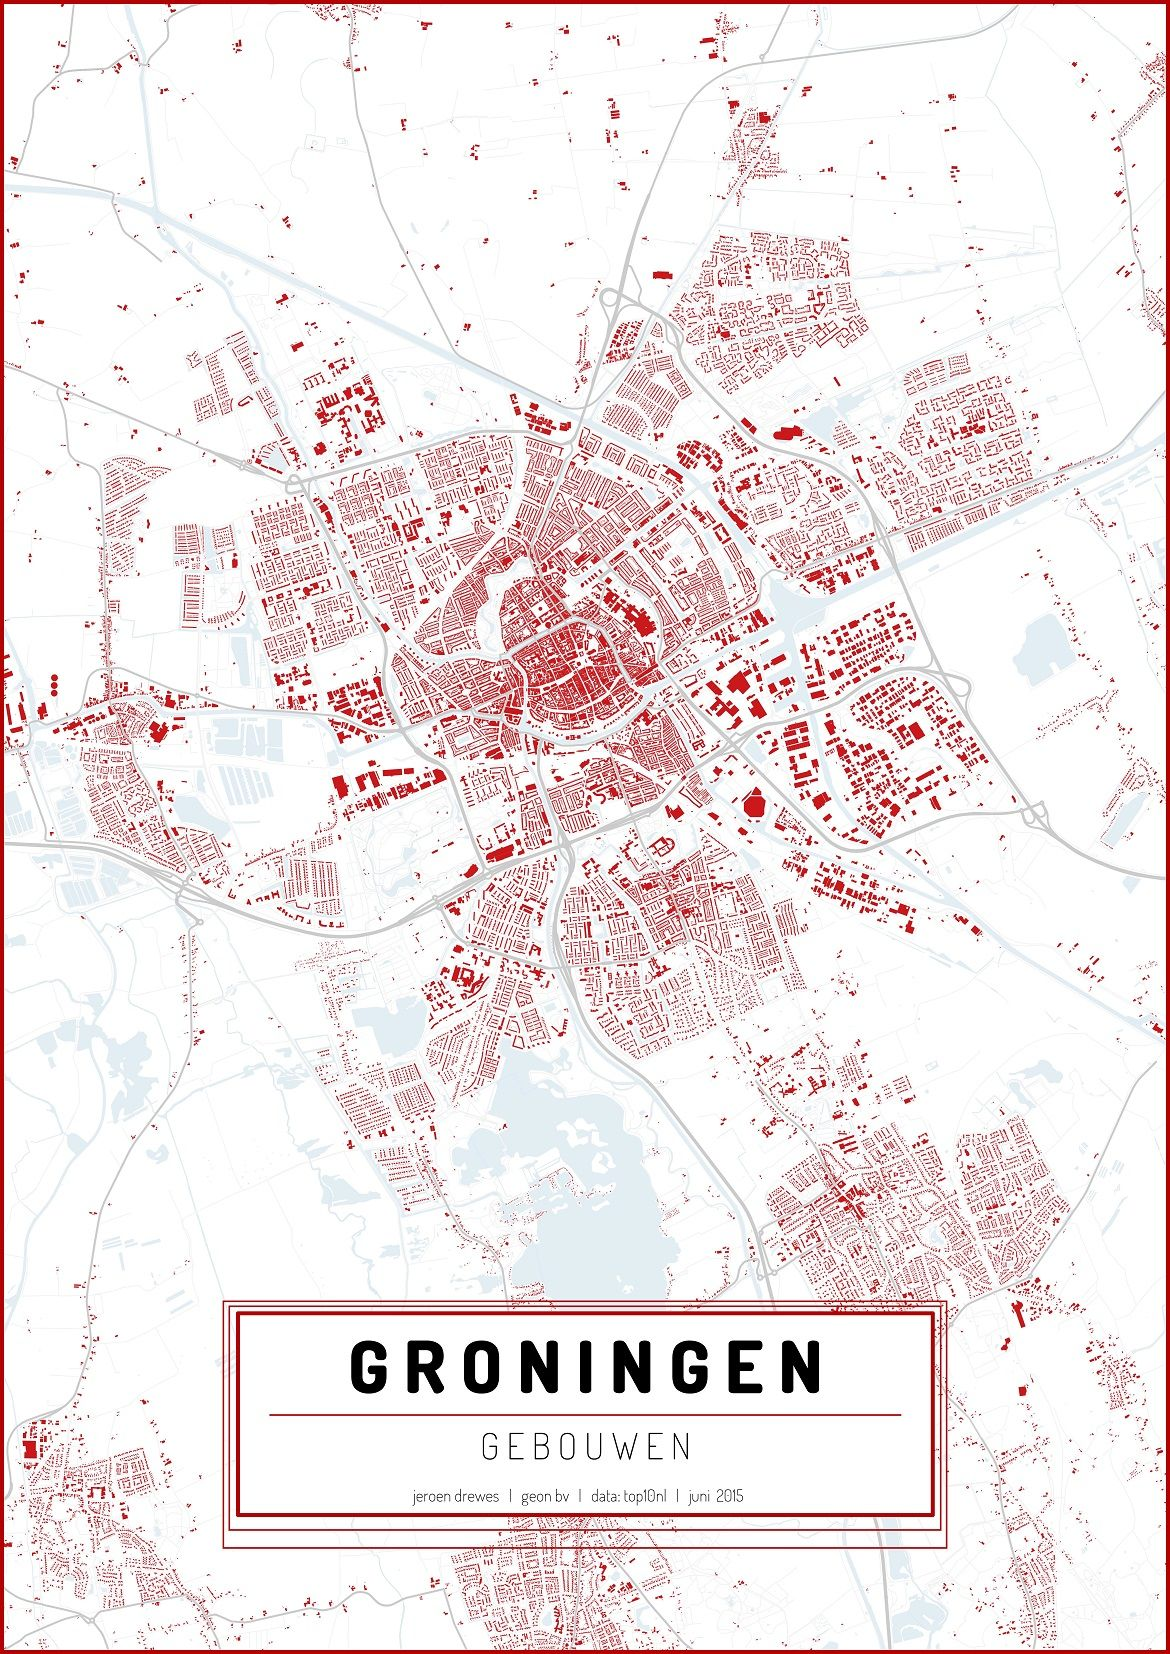 This map is a modern representation of the city of Groningen It